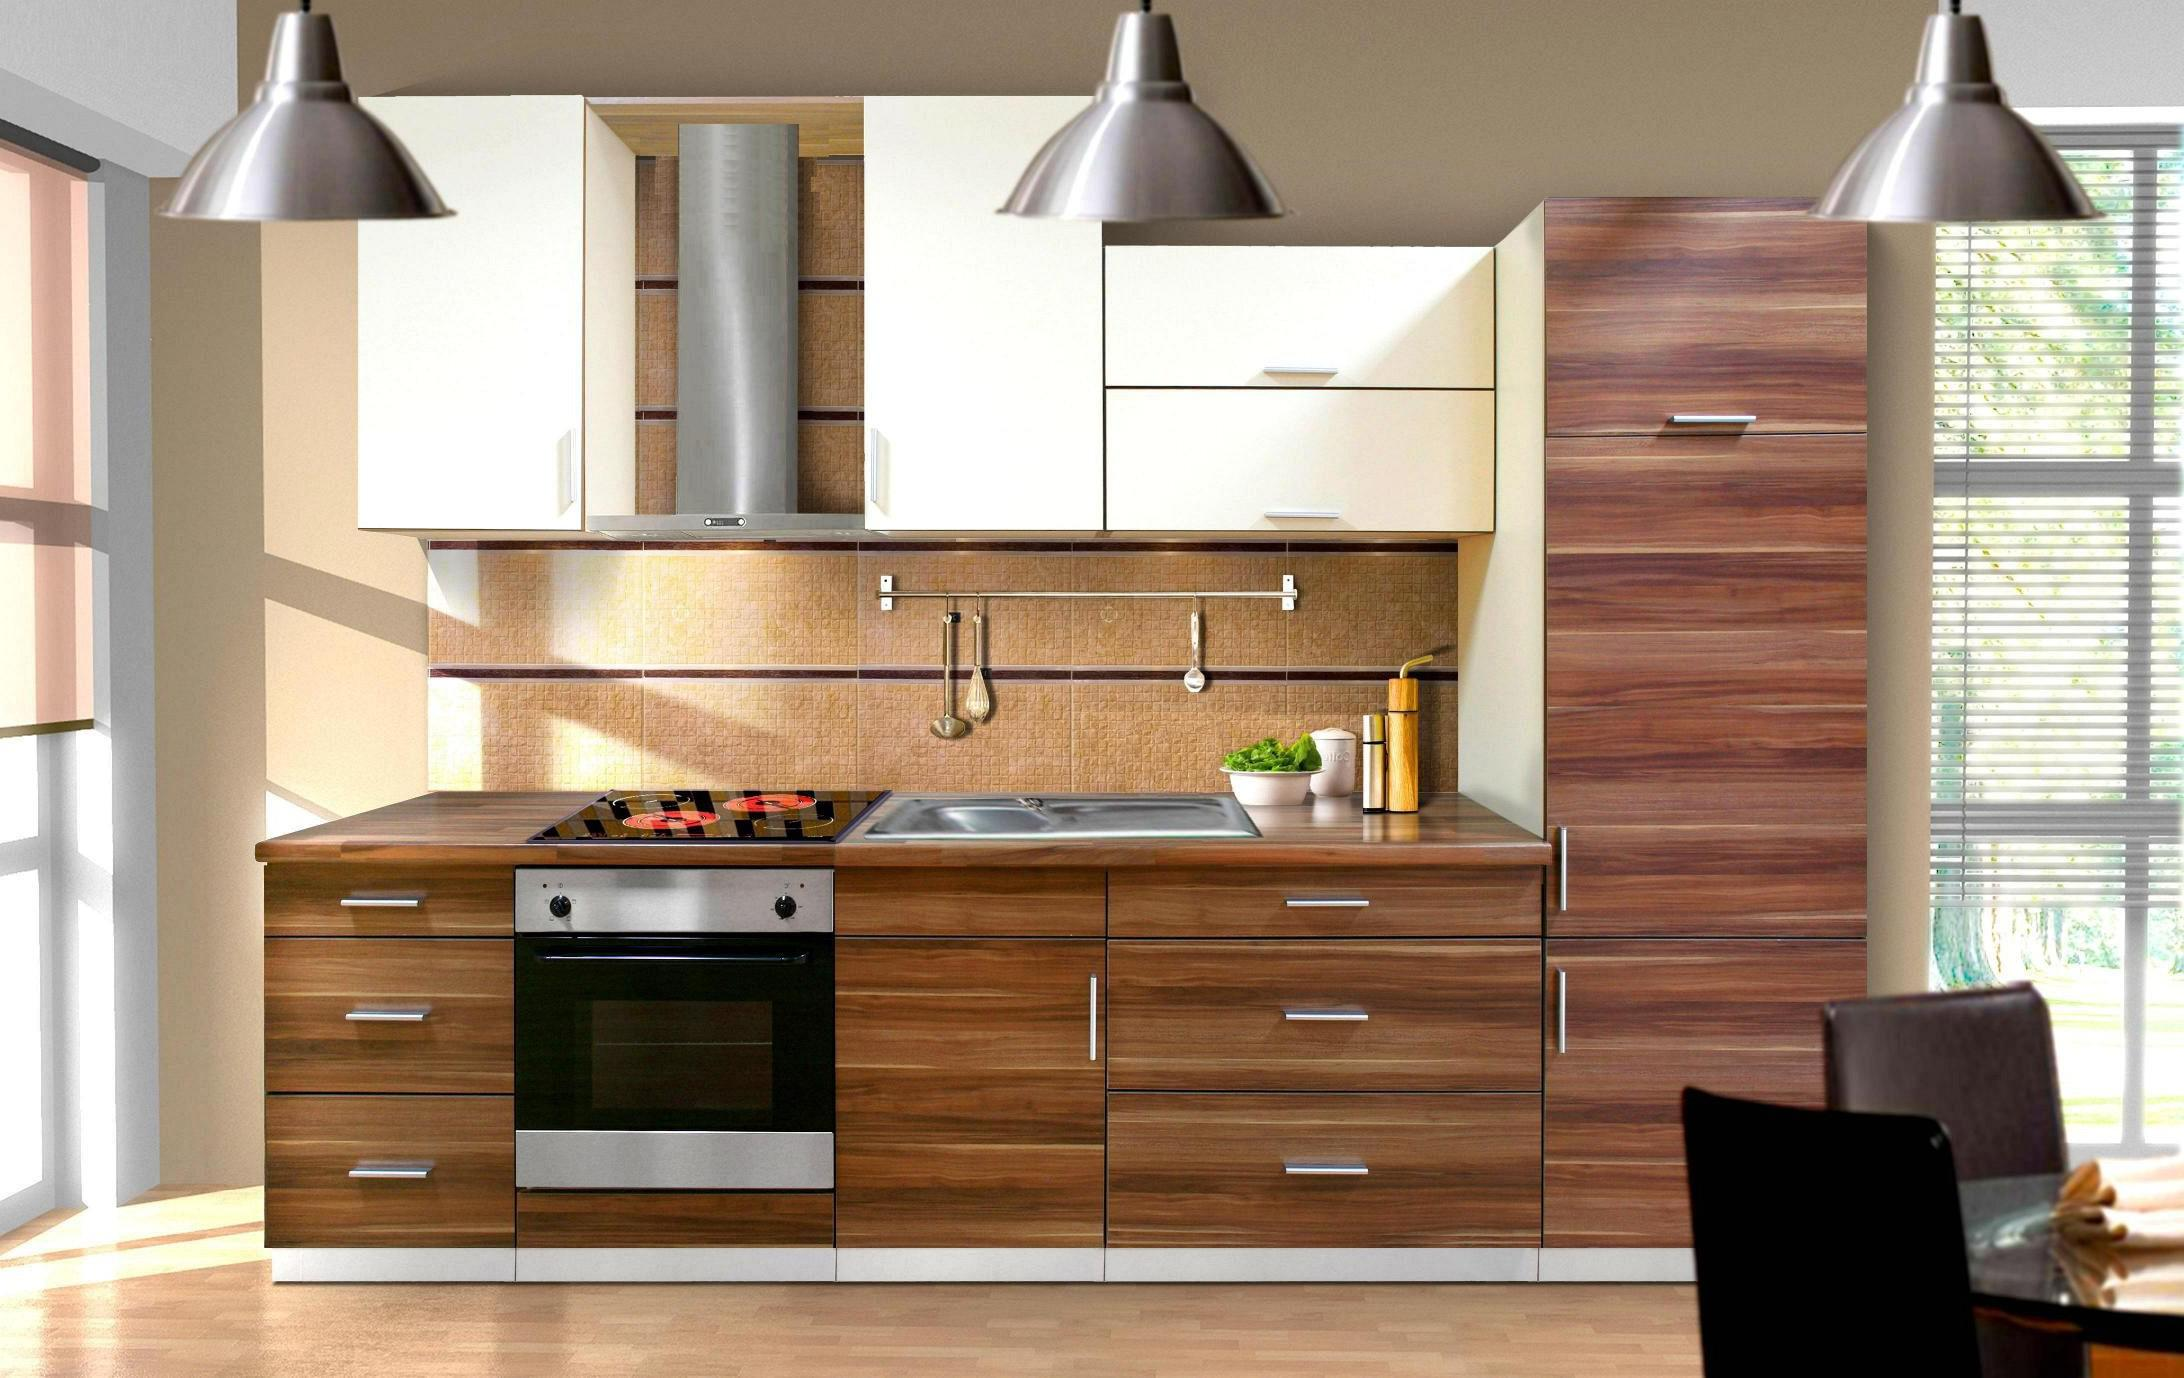 Image of: Wooden Kitchen Design Ideas